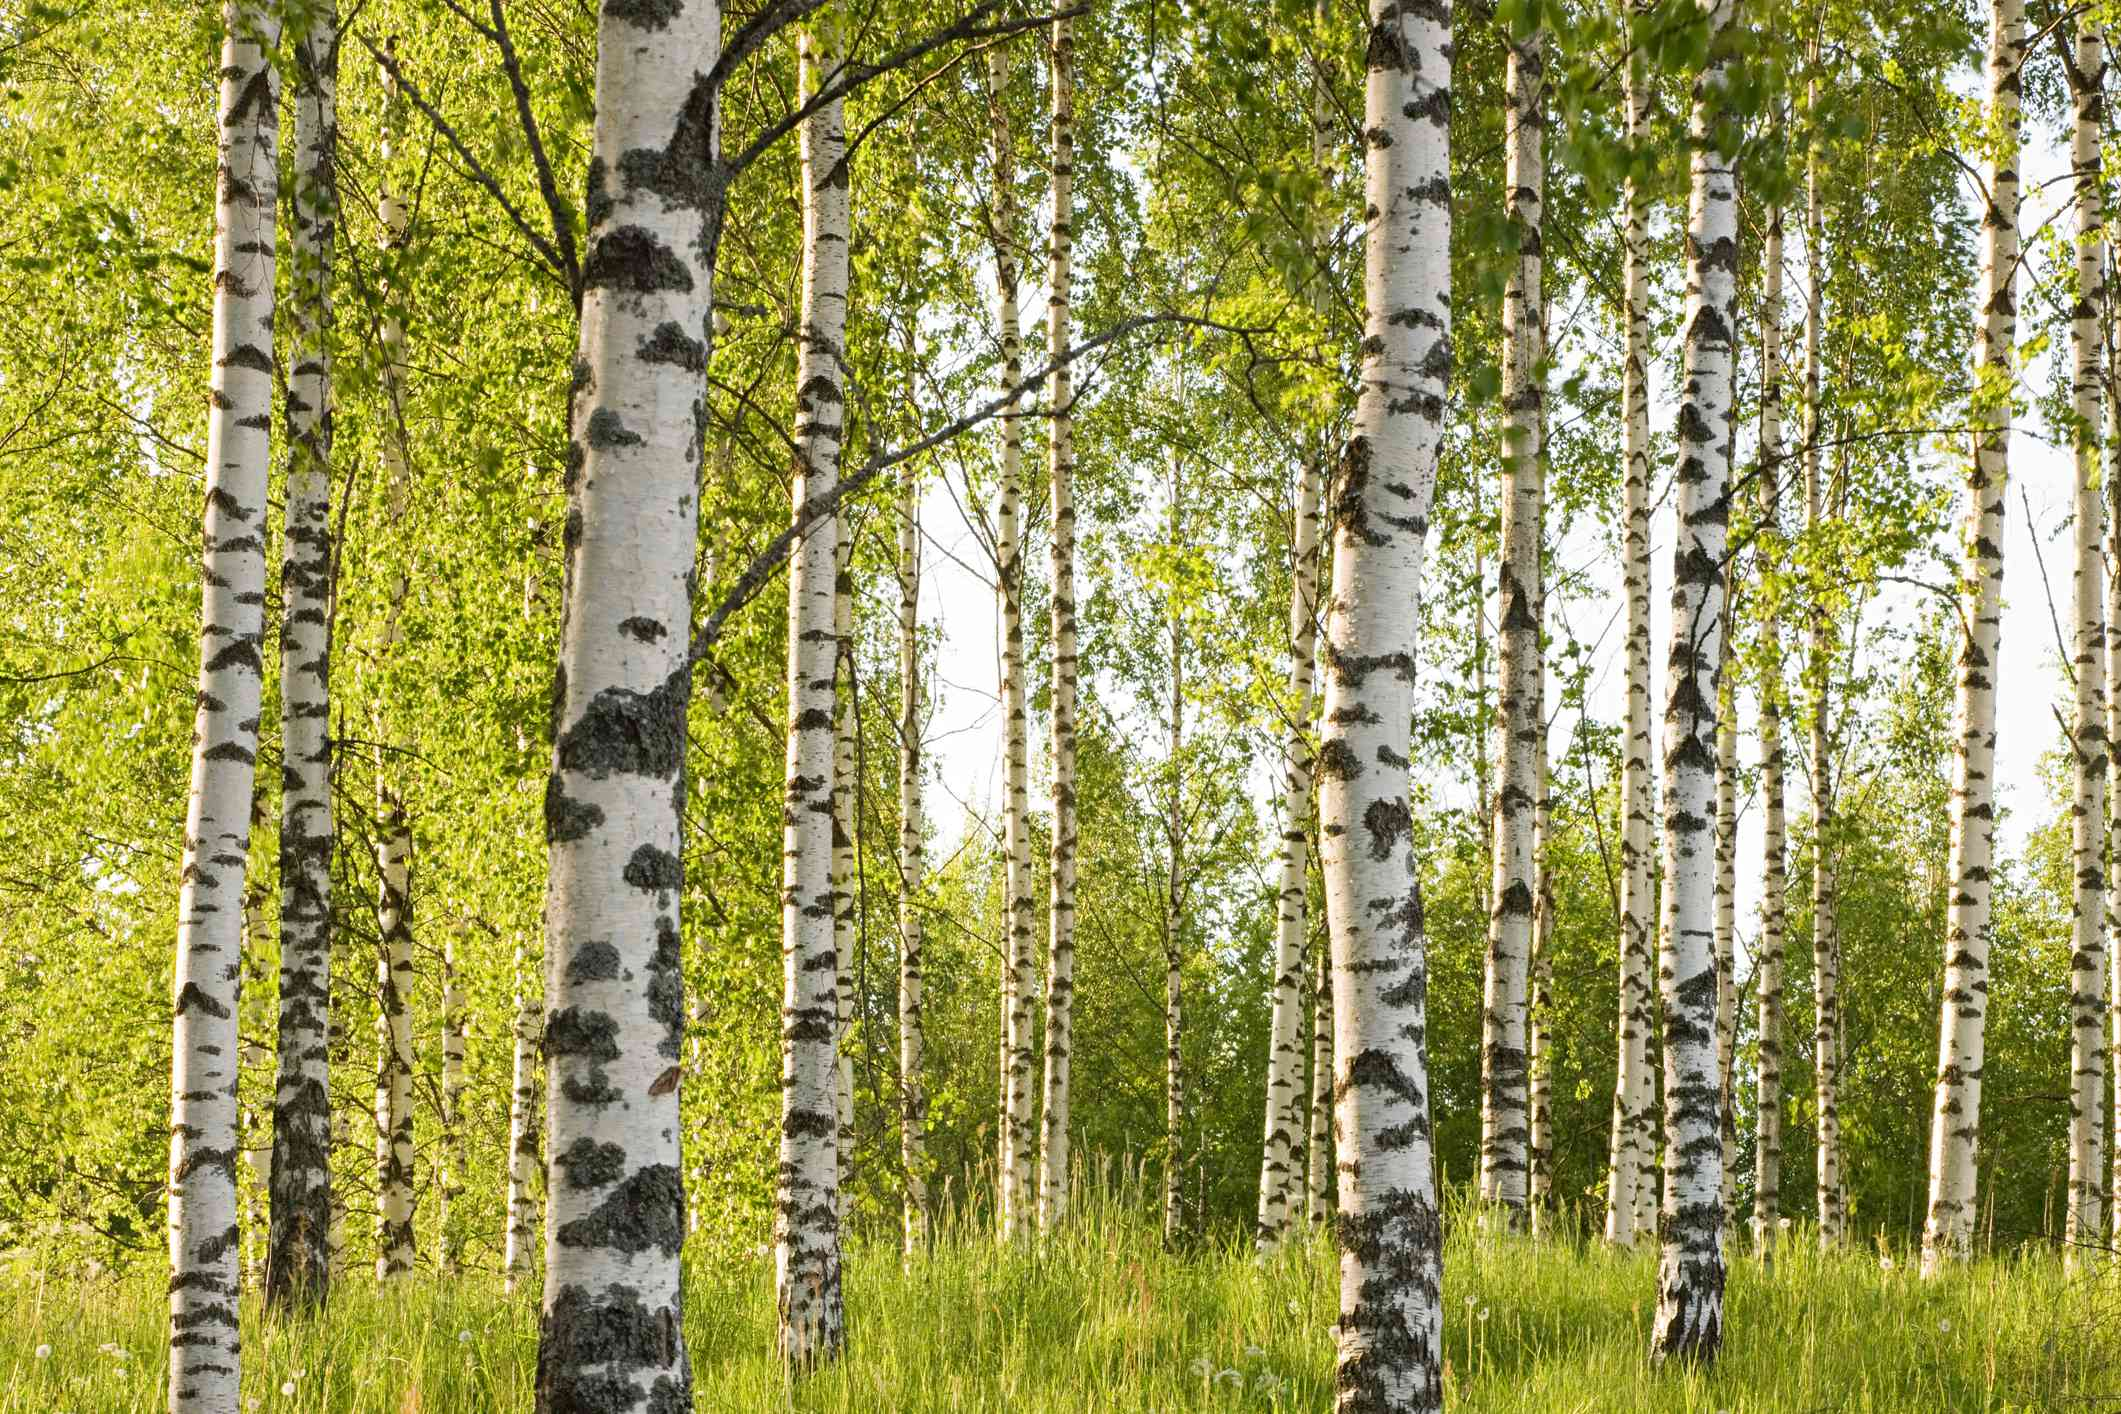 Birch trees in a forest.